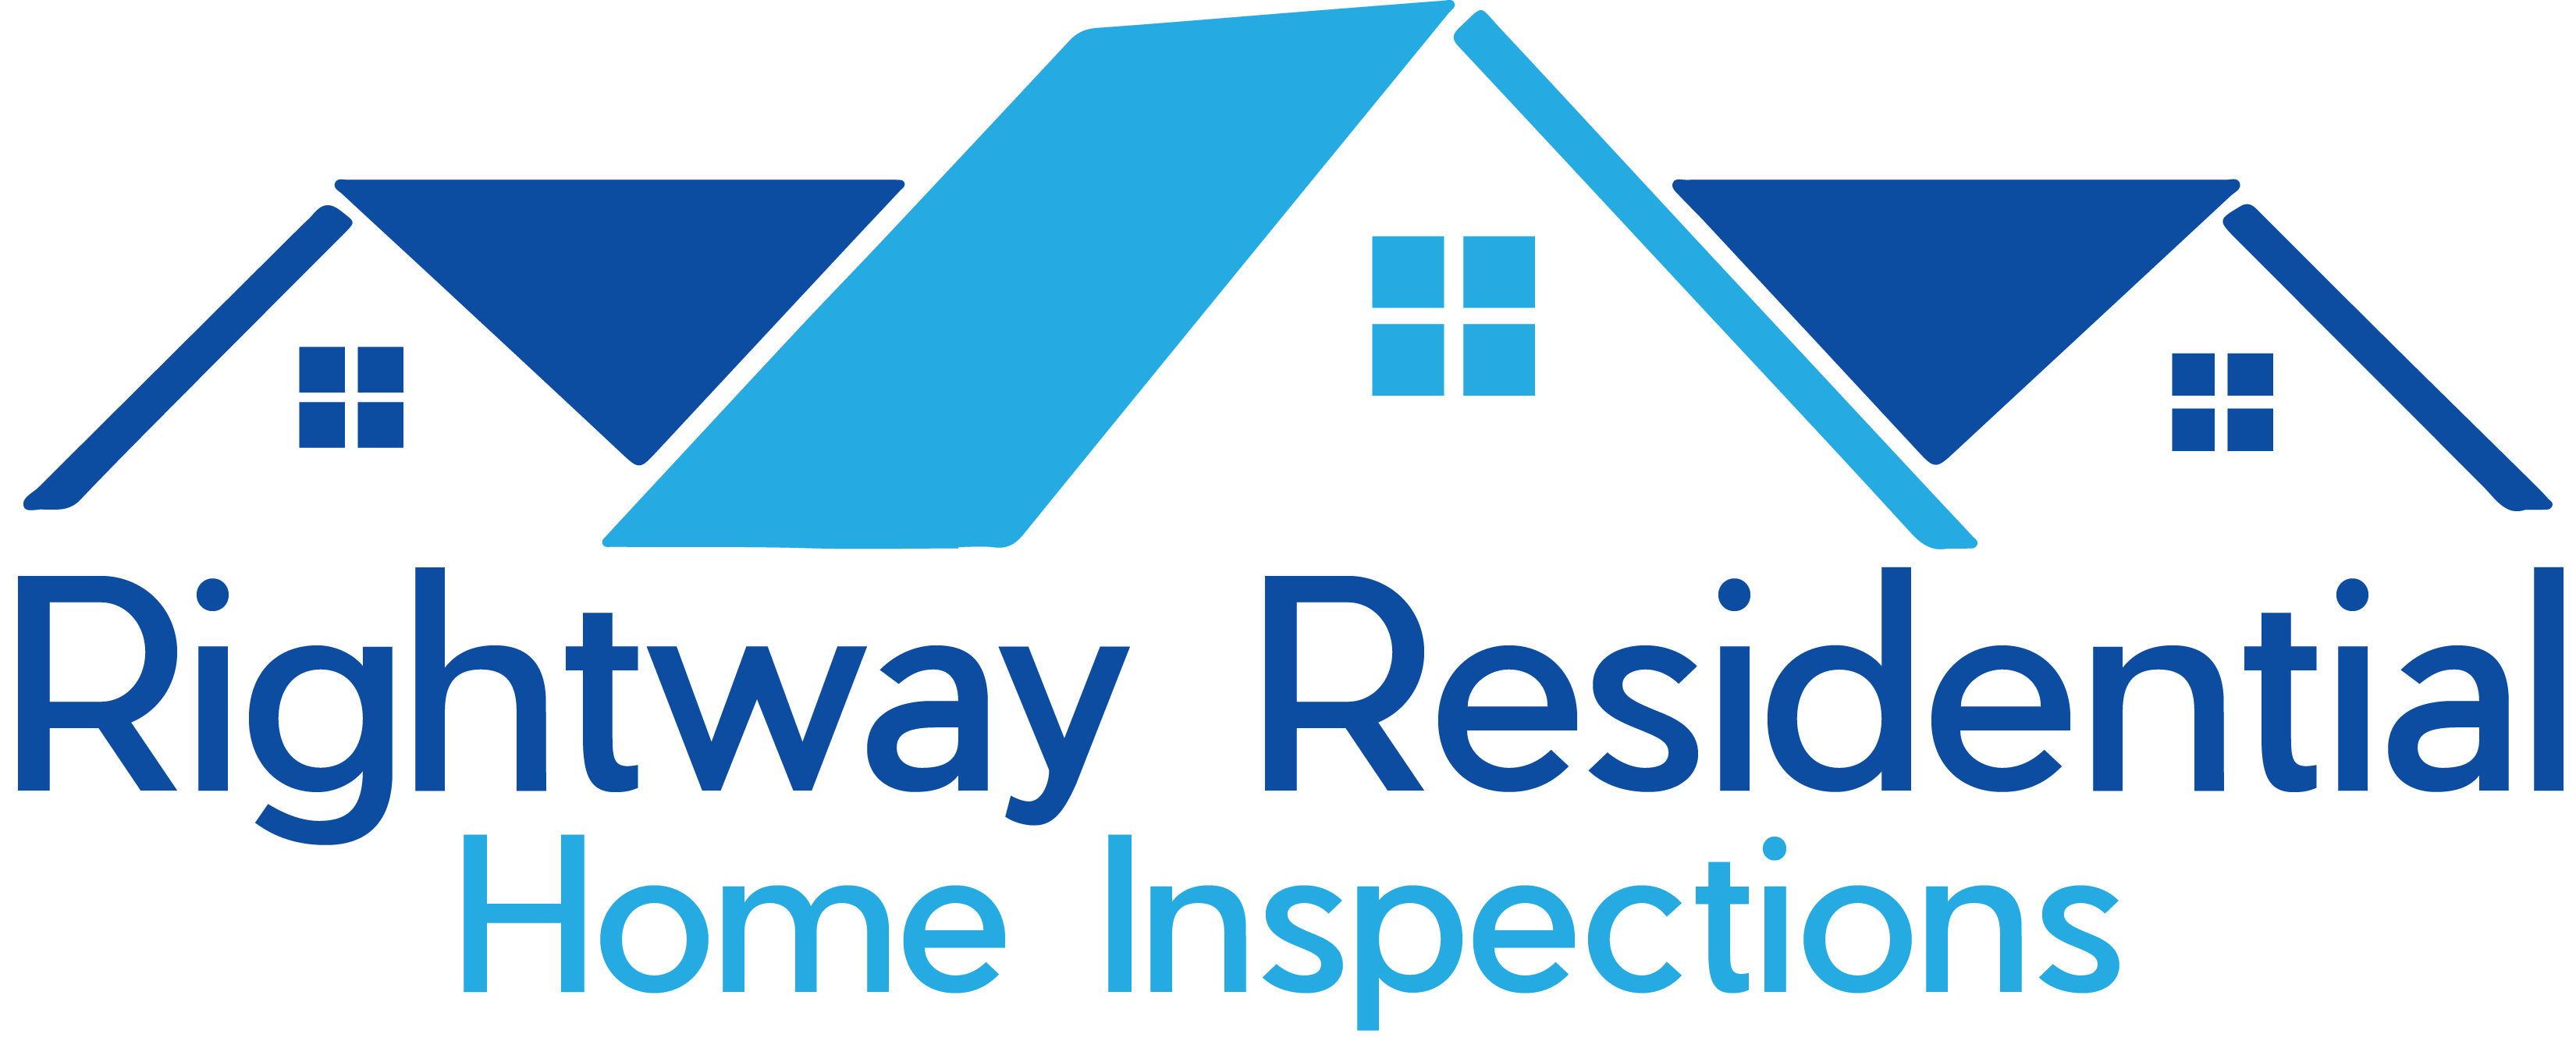 Rightway Residential Home Inspections